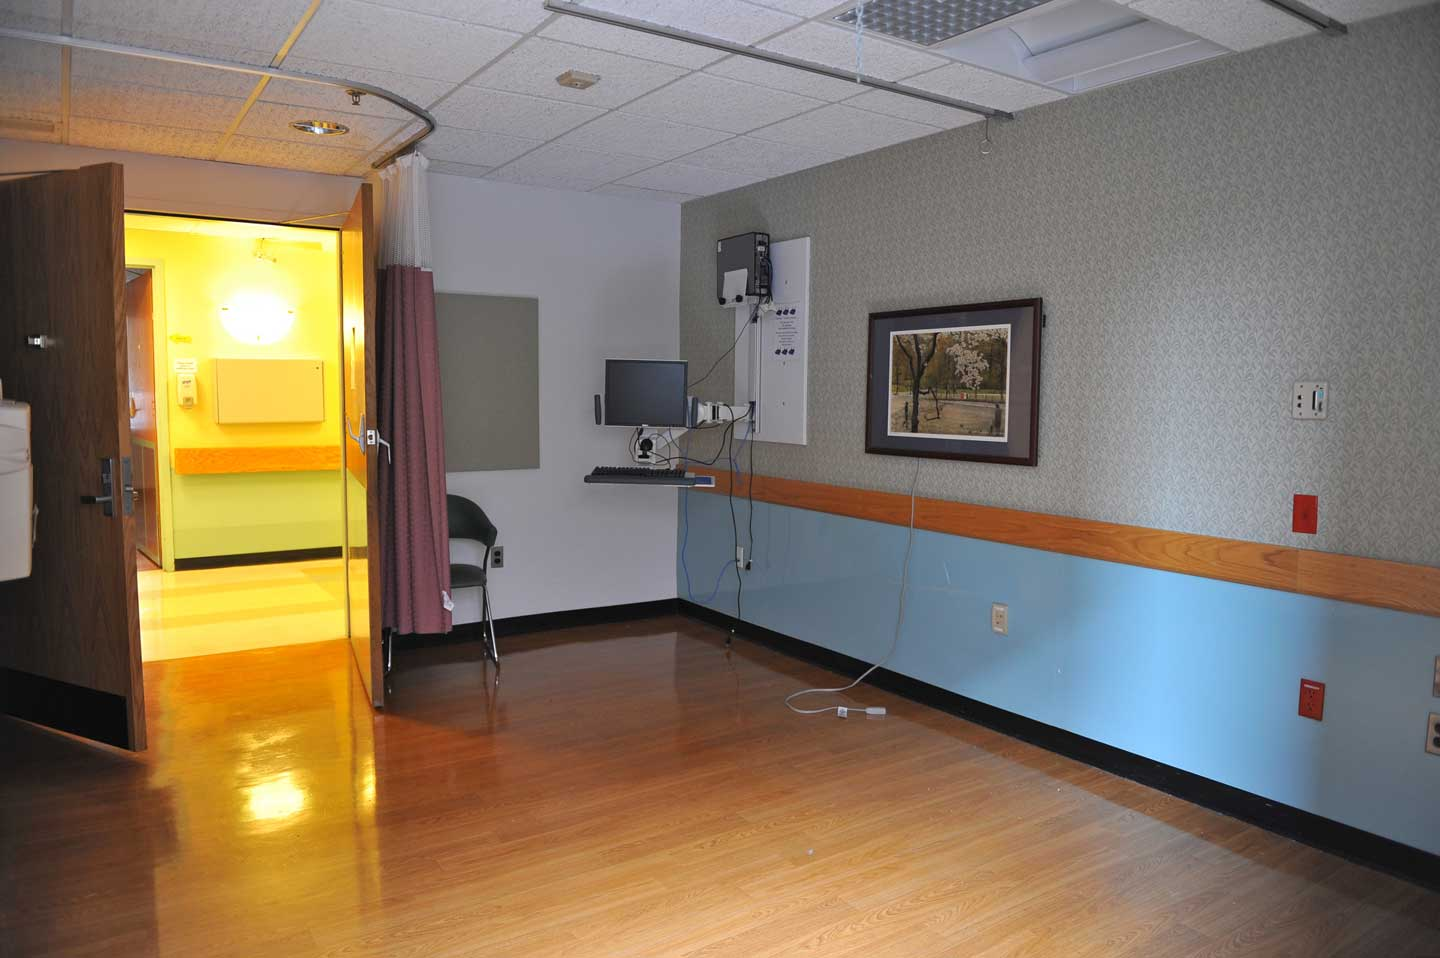 An old patient room, where so many have healed, is left vacant after the move.